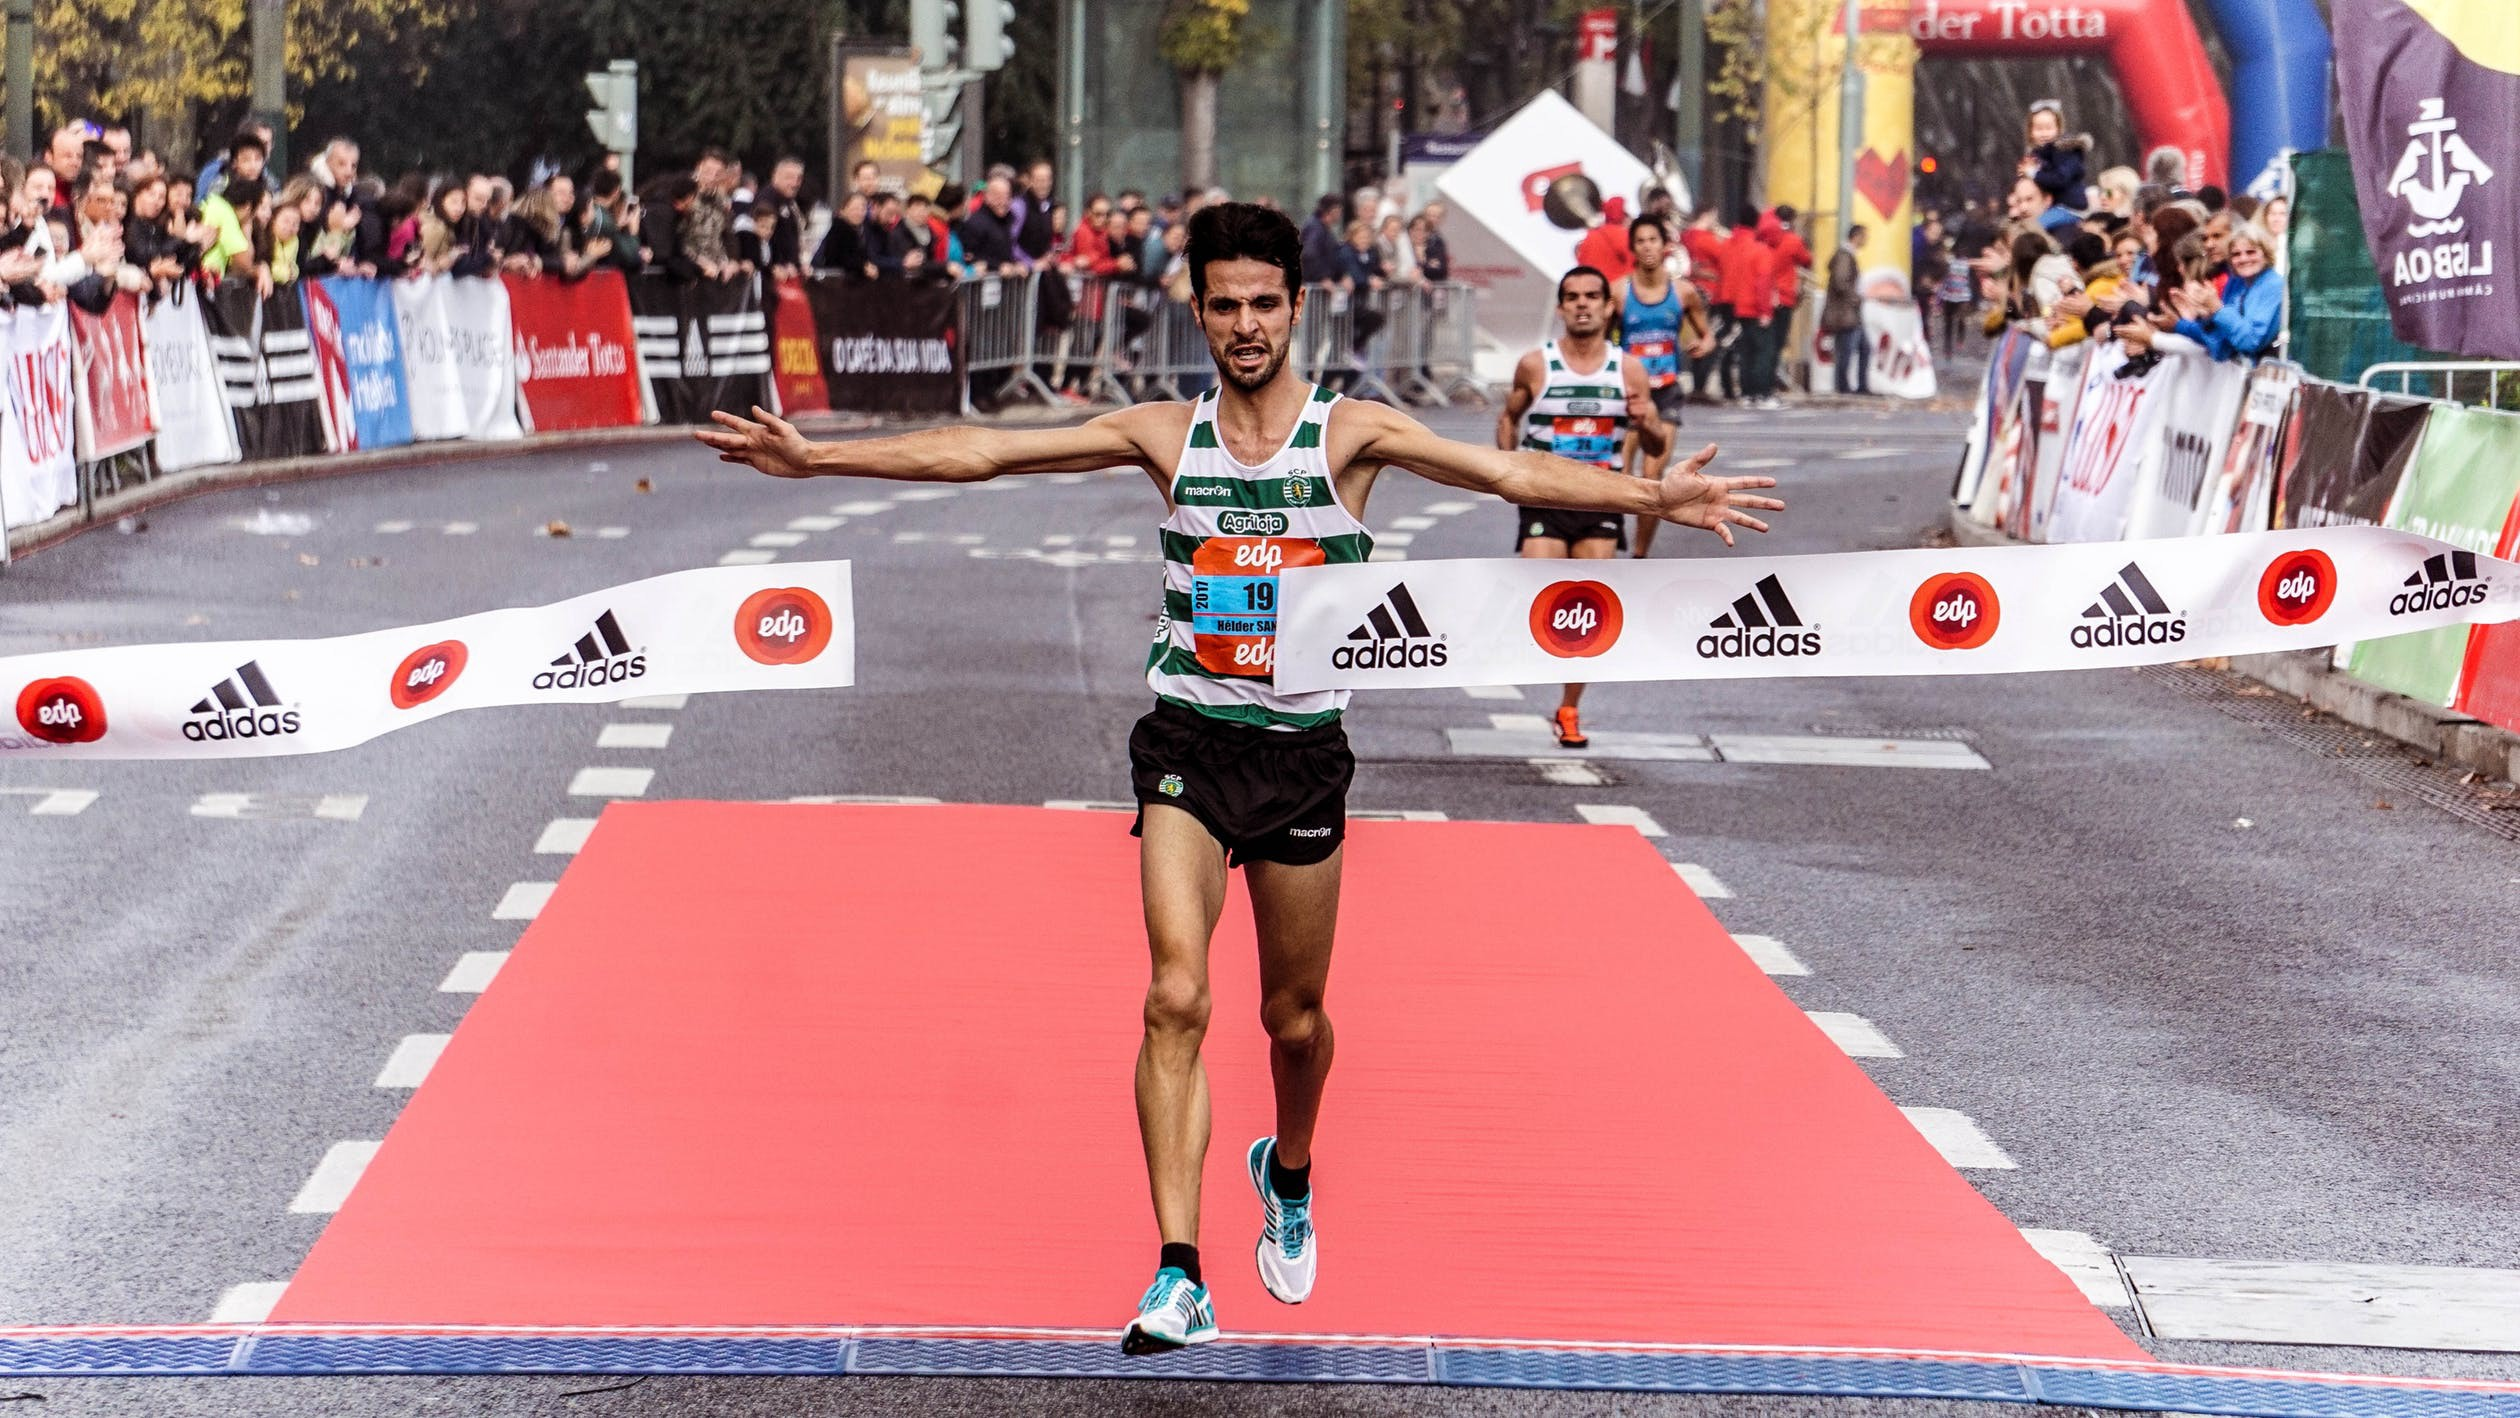 Image of runner crossing a finish line